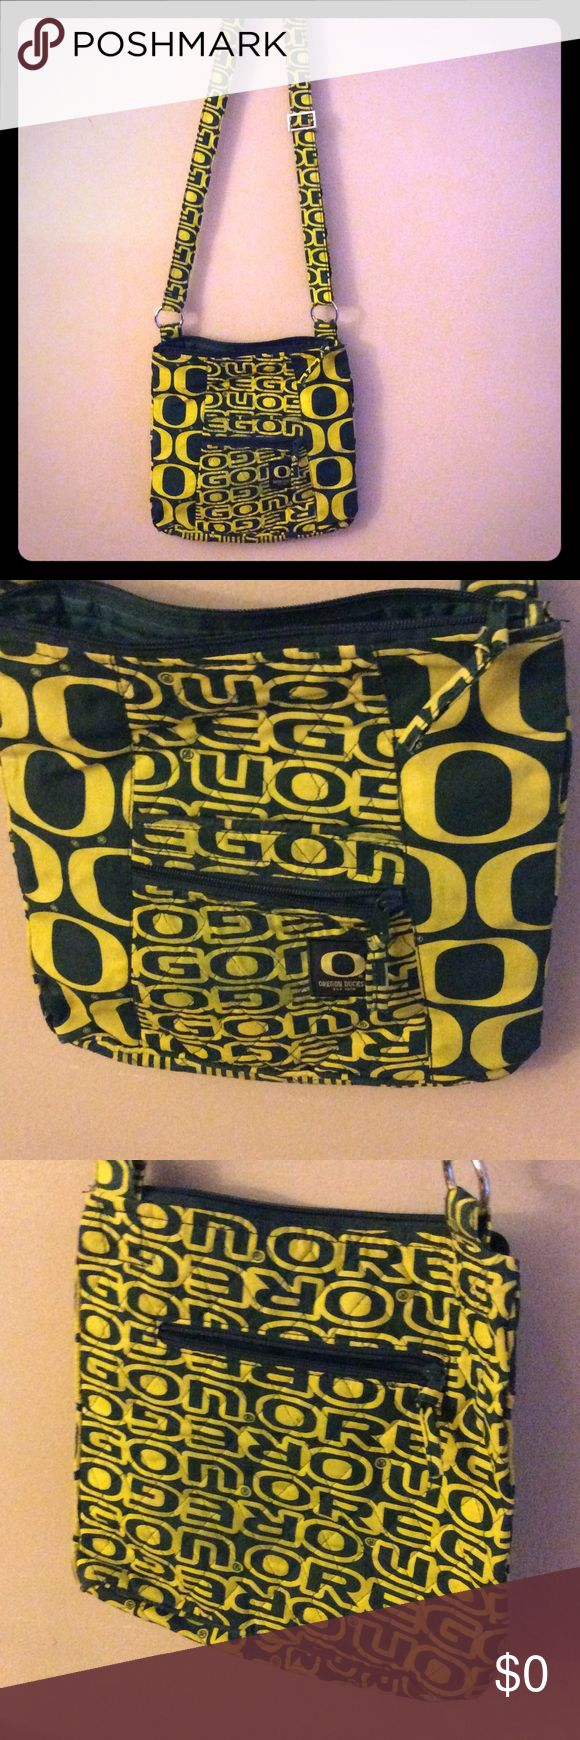 Oregon Cloth Crossbody bag Game Day Oregon Ducks Crossbody bag. Zippers on front and back of the bag.  One interior pocket.  Adjustable strap. Forever Collectibles Bags Crossbody Bags